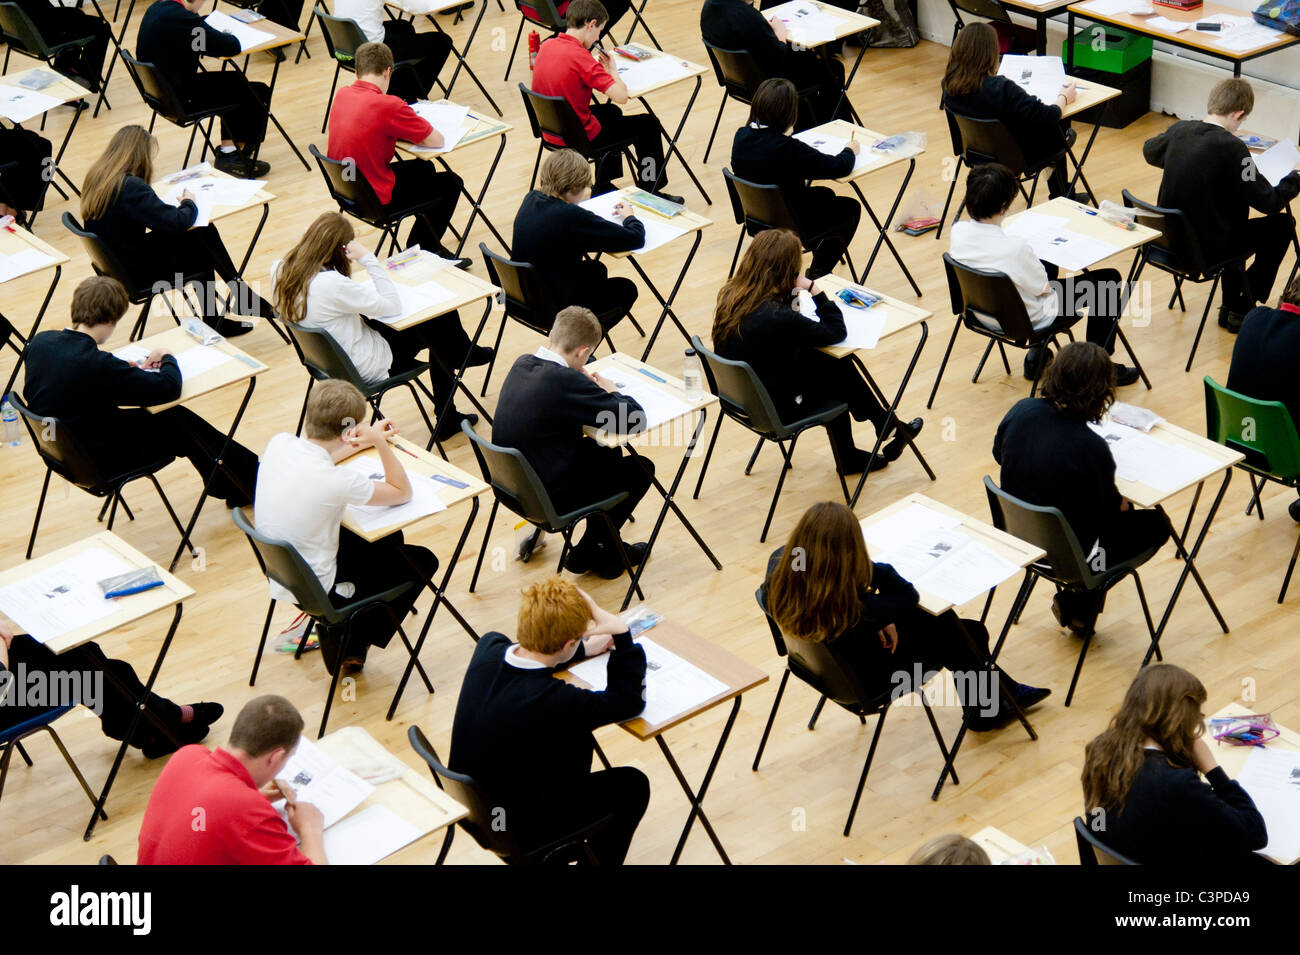 Rows of teenage boy and girl school students sitting their GCSE examinations, UK - Stock Image